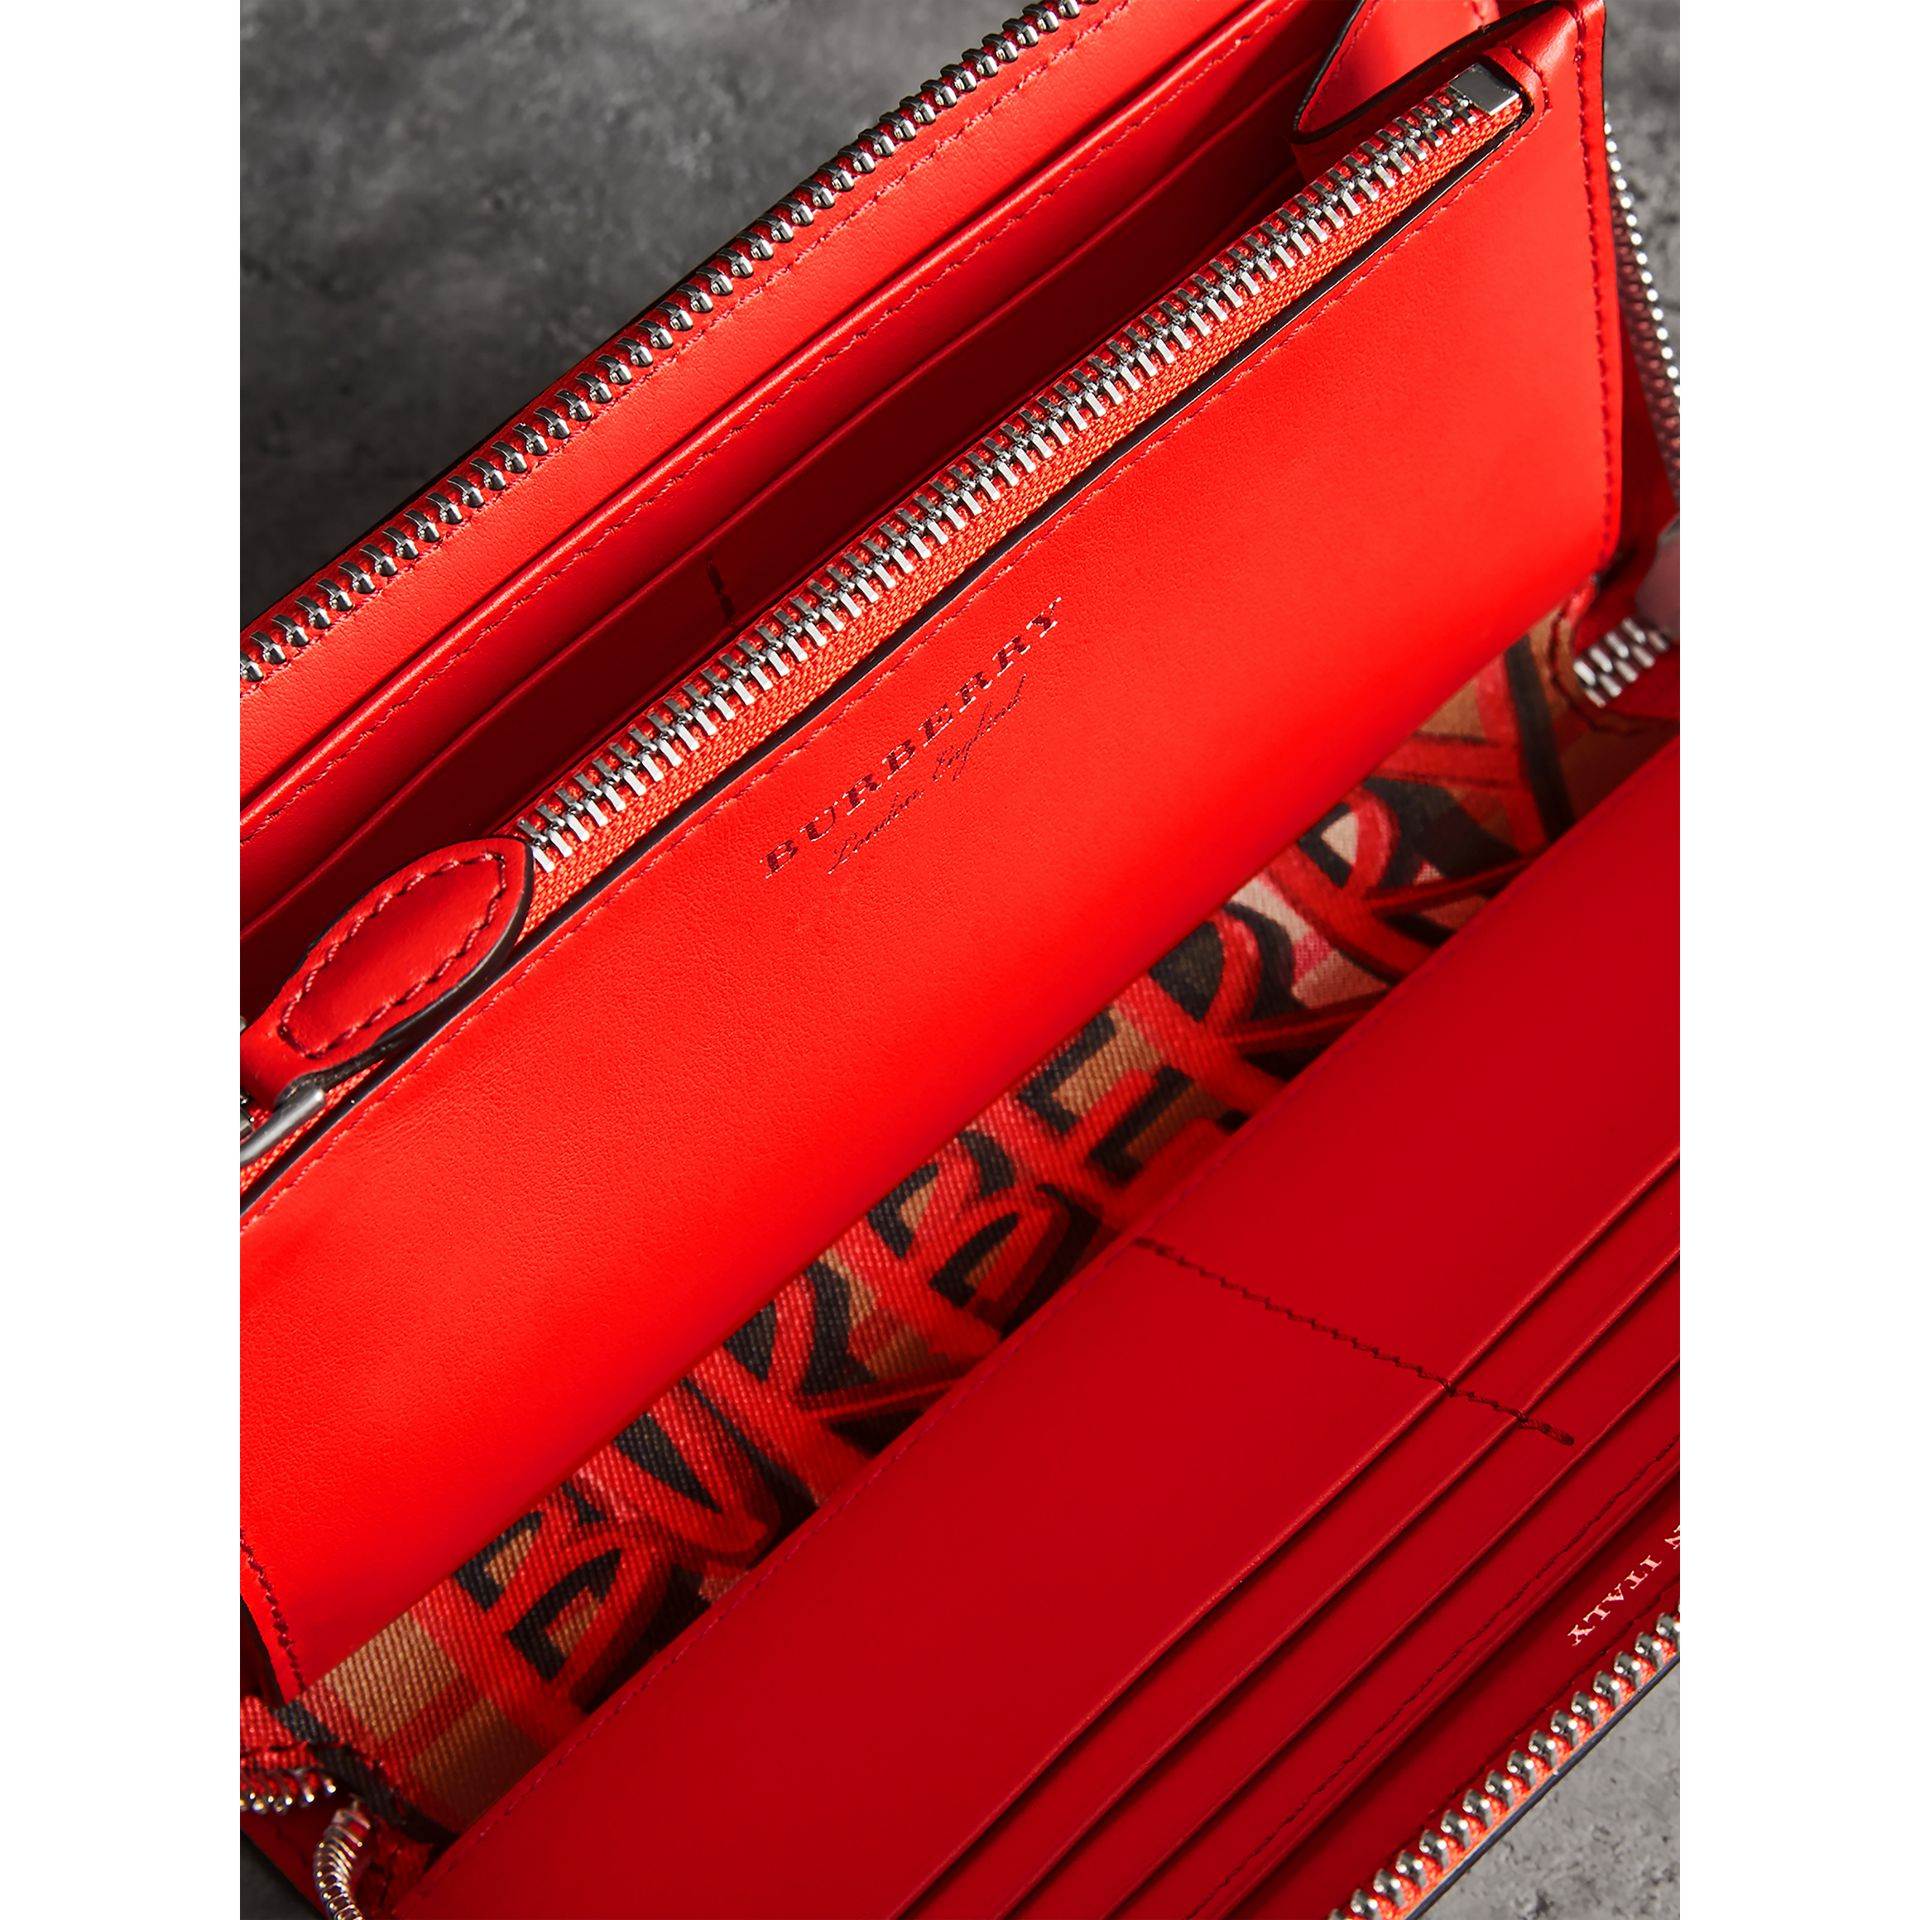 Graffiti Print Vintage Check Leather Ziparound Wallet in Red - Women | Burberry - gallery image 3